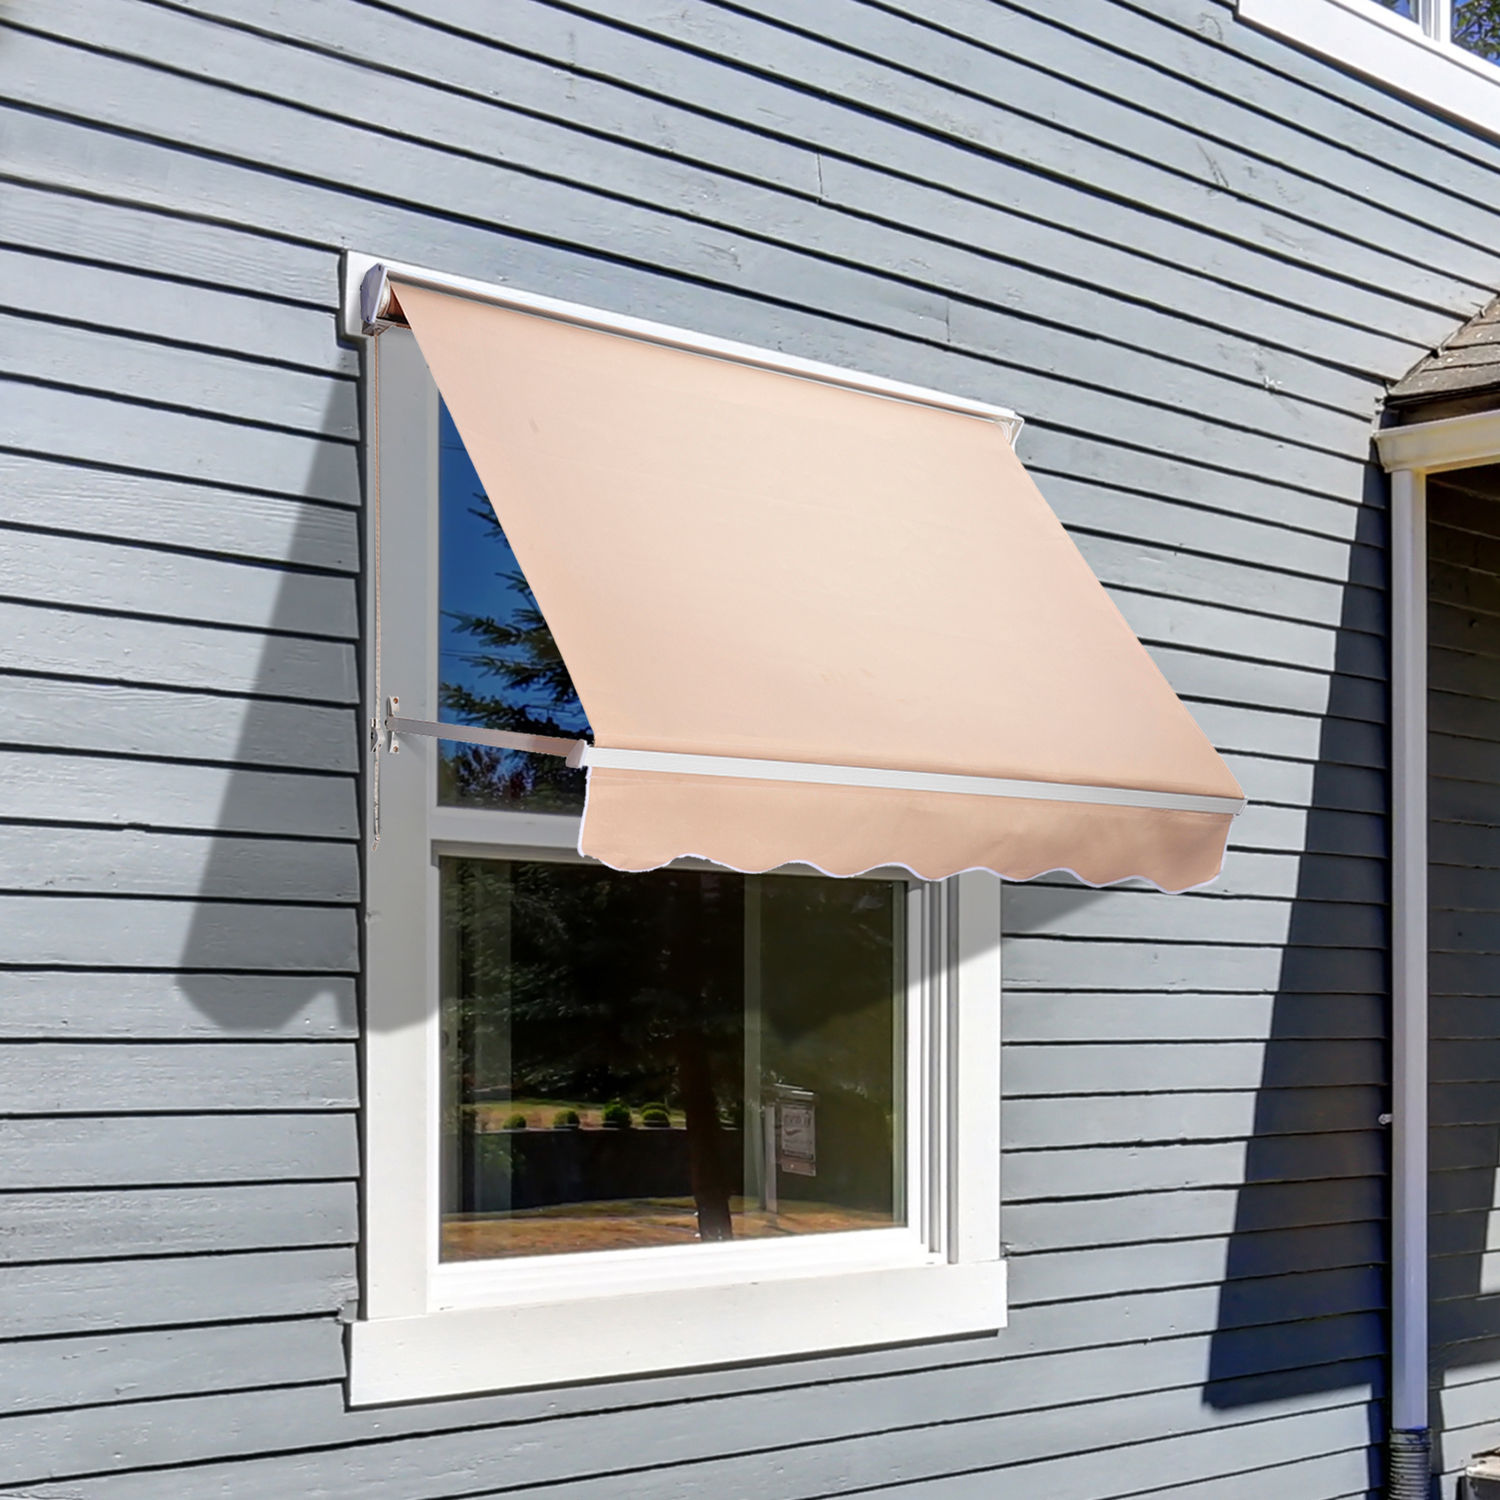 sun shelter back outsunny patio door retractable living manual front waterproof rain outdoor shade cover awning canopy